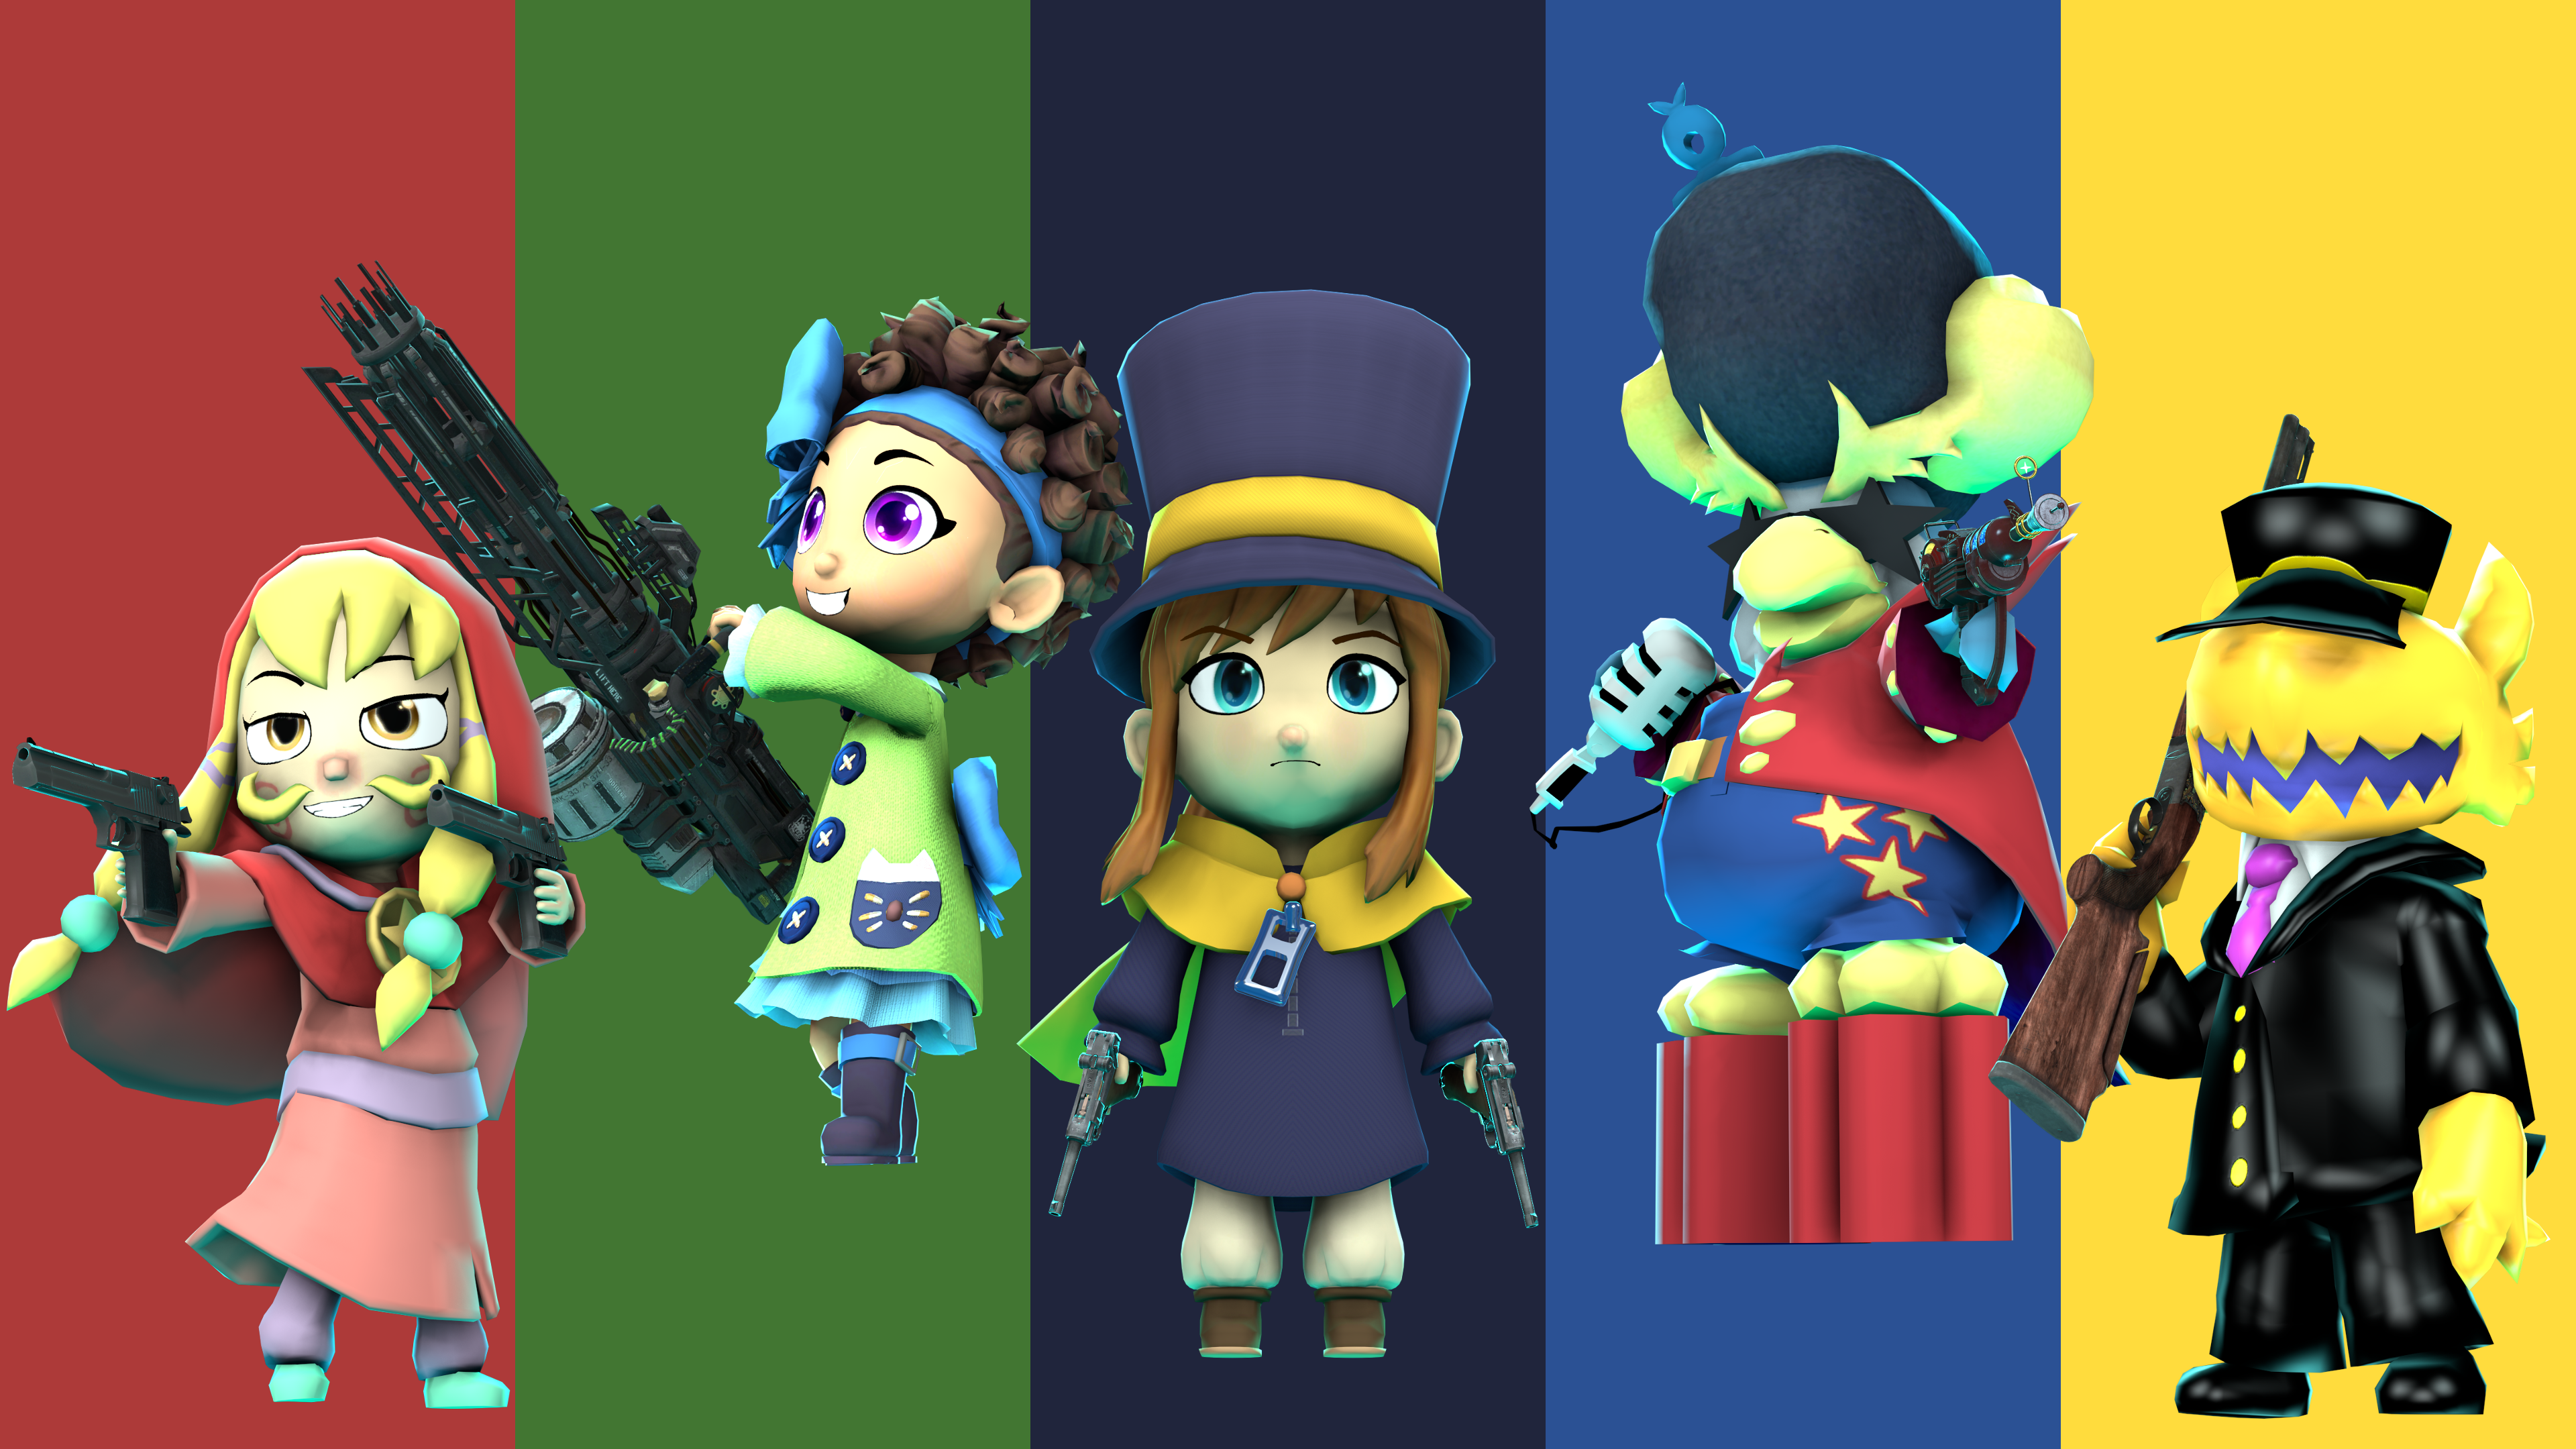 Steam Community A Hat In Time A Hat In Time Guns Artwork Cool Artwork